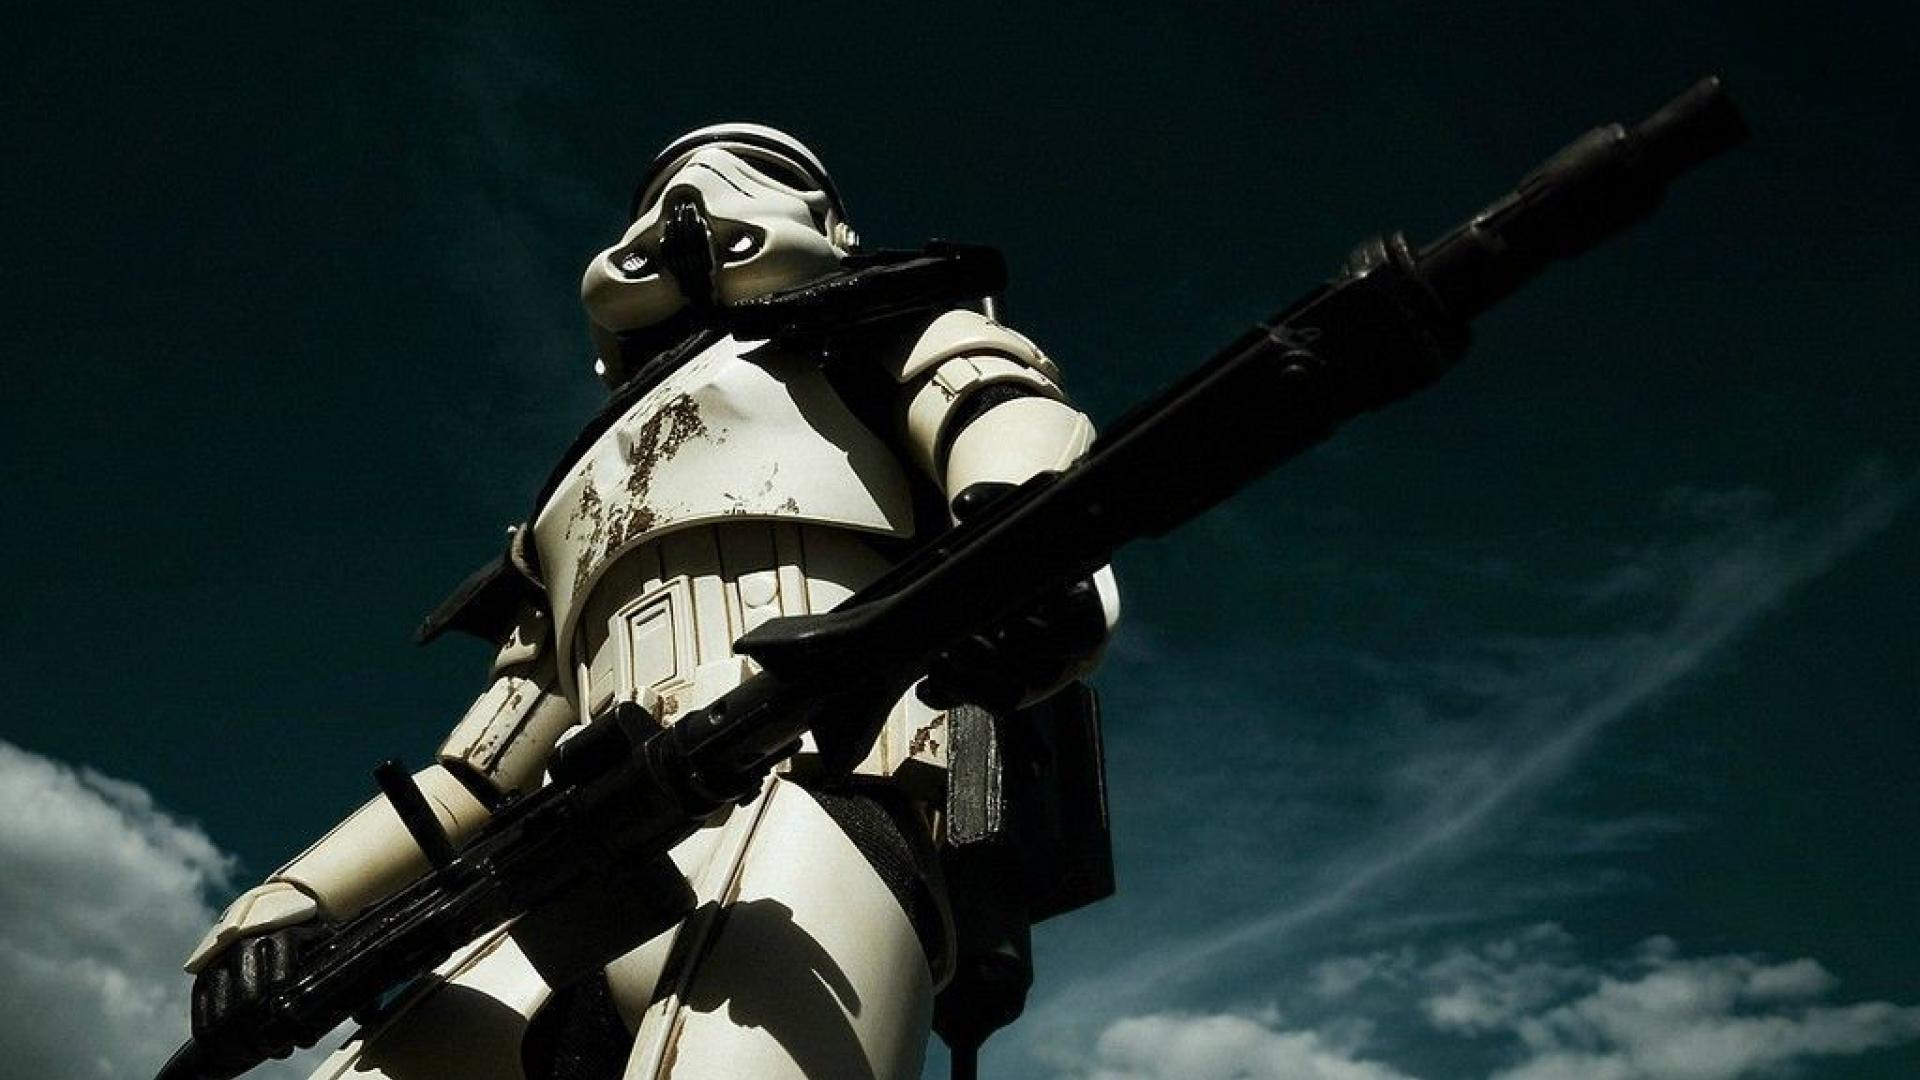 Free Download Star Wars Stormtroopers Galactic Empire Storm